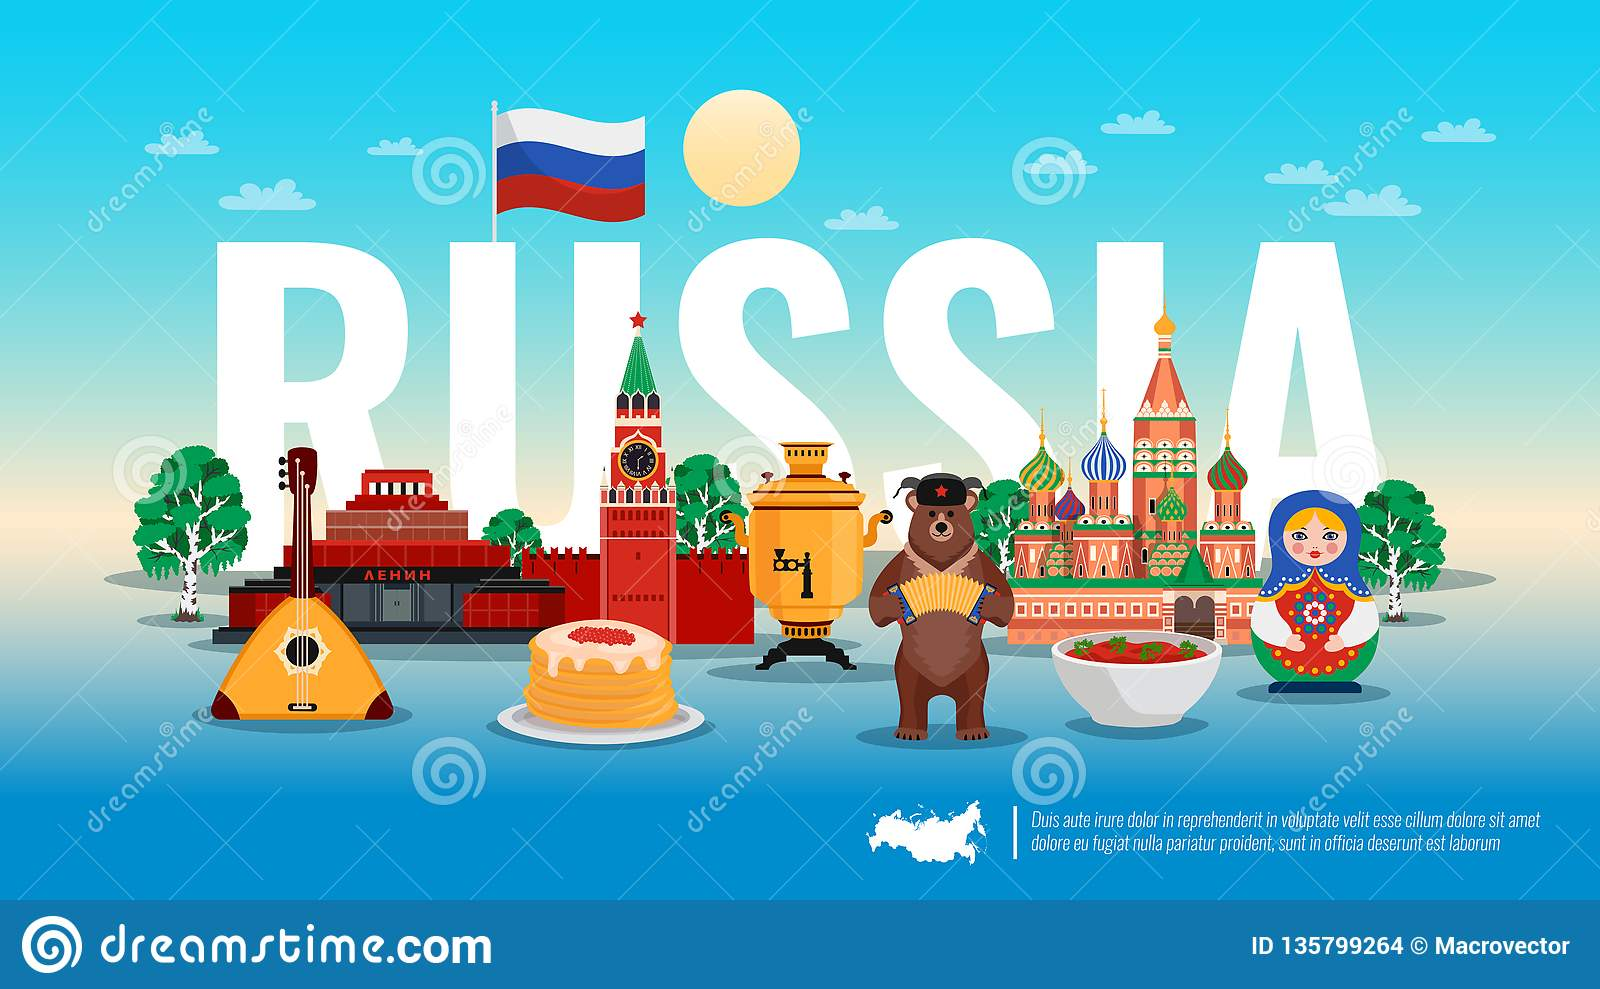 Russia Travel Flat Composition